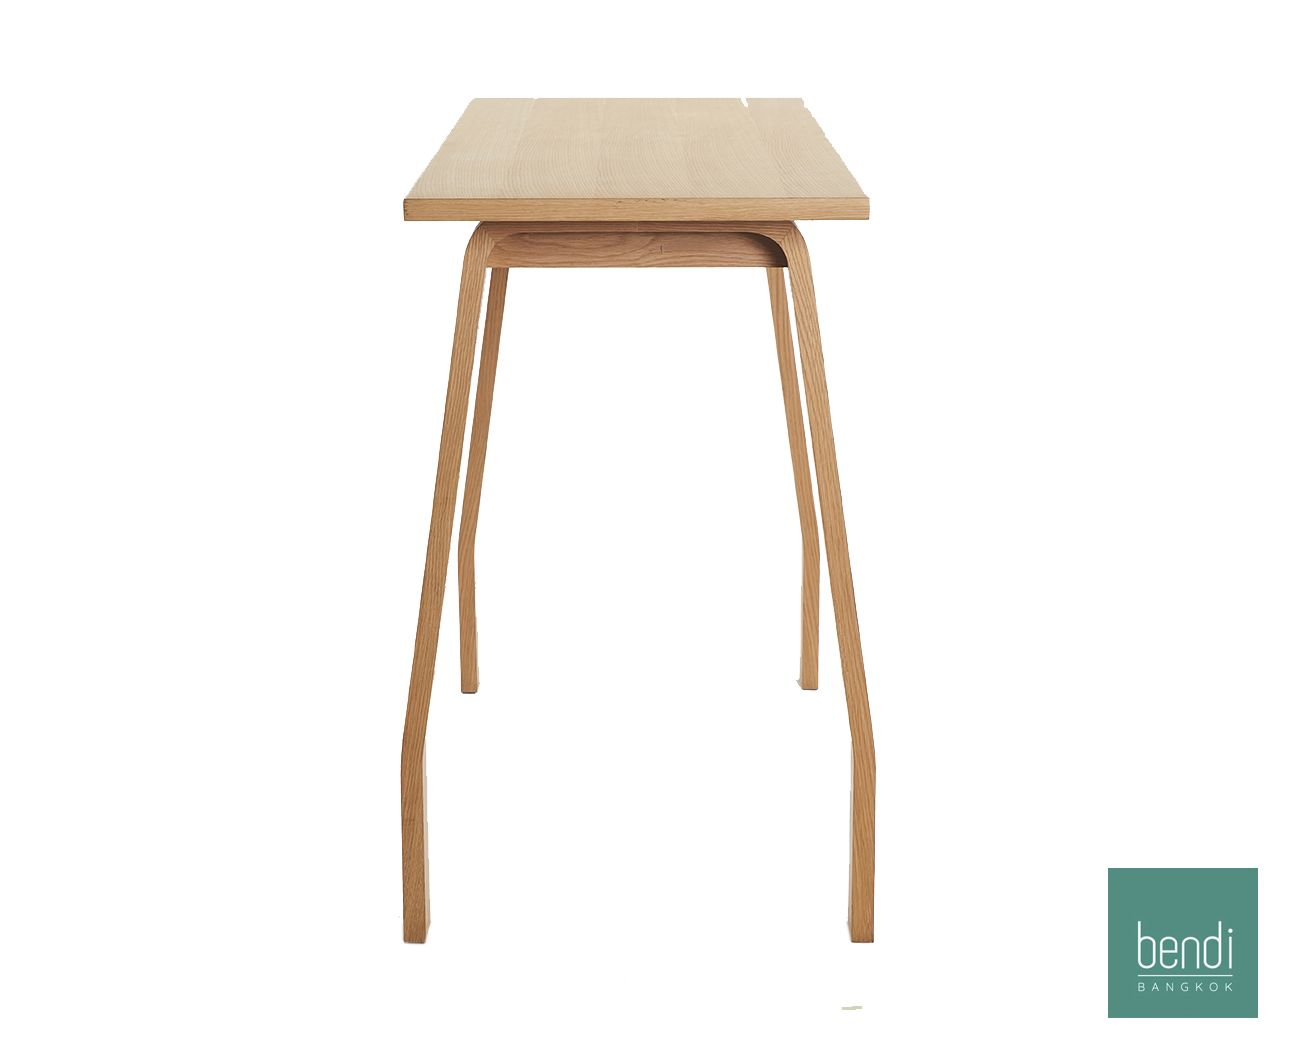 #bendi #chair #woodchair #woodenchair #office #officechair #workspace #workplace #restaurant #cafe #hotel #hospitality #cafechair #restaurantchair #horeca #thailand #design #highquality #wood #premium #furniture #chairdesign #woodworkingskills #chairs #architecture #interior #luxurychair #innovation #bendingchair #table #woodentable #loungechair #โต๊ะ #เก้าอี้ #เก้าอี้ไม้ #เก้าอี้สำนักงาน #bendiรุ่นไม้